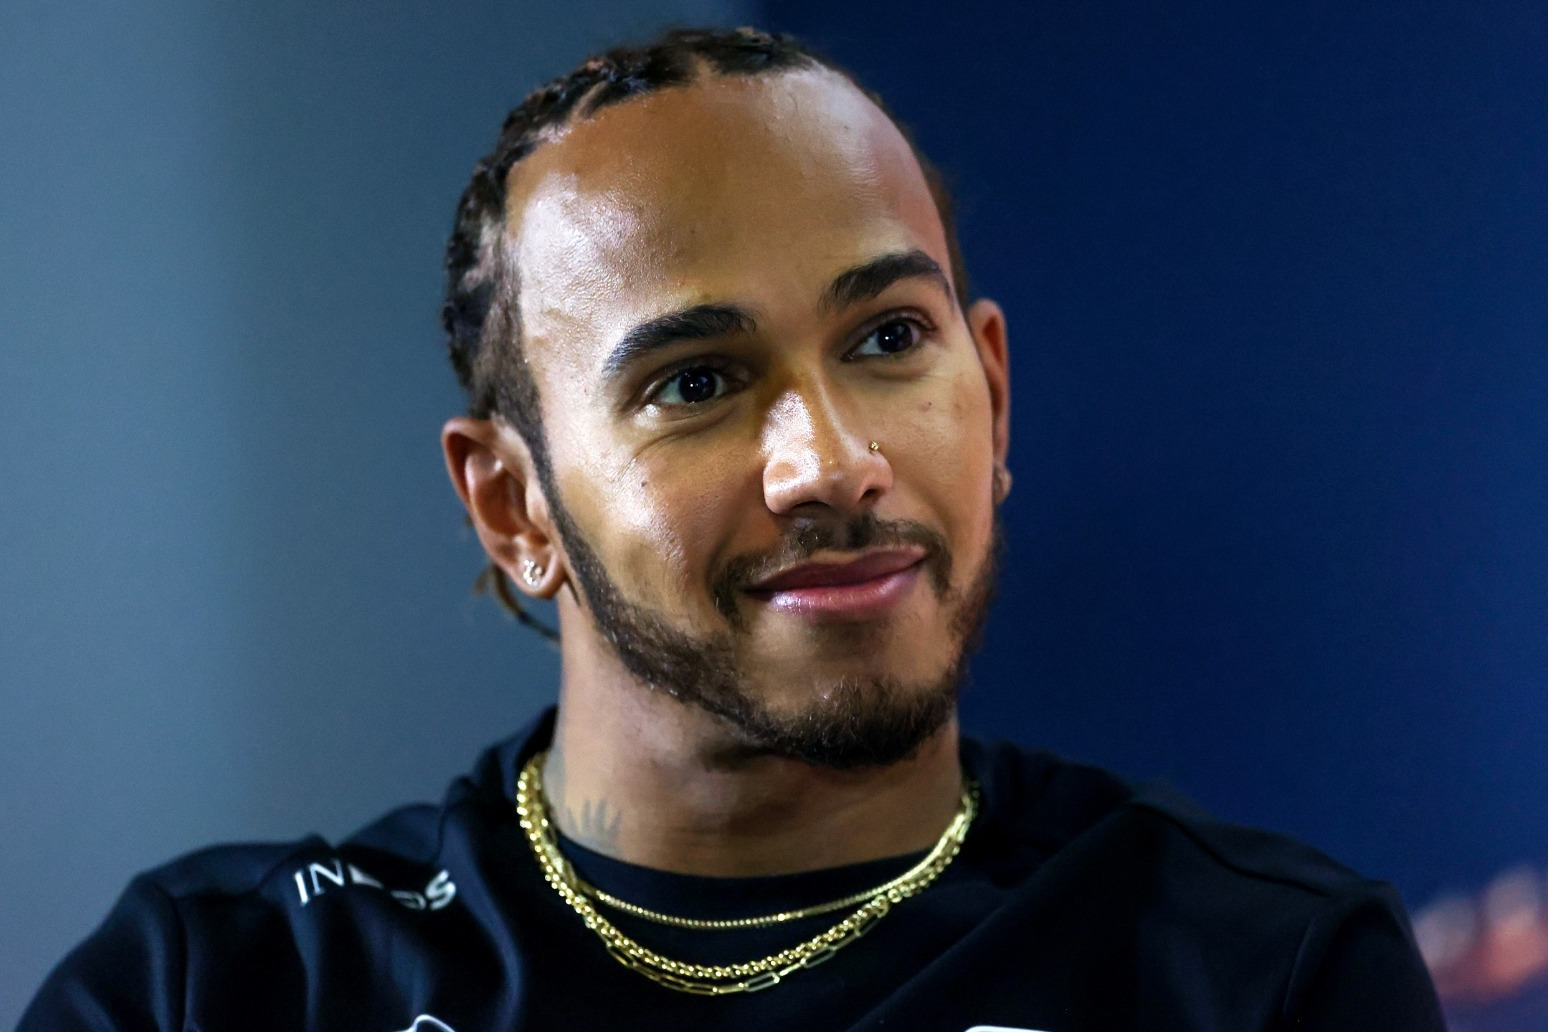 Hamilton sets track record at Spa